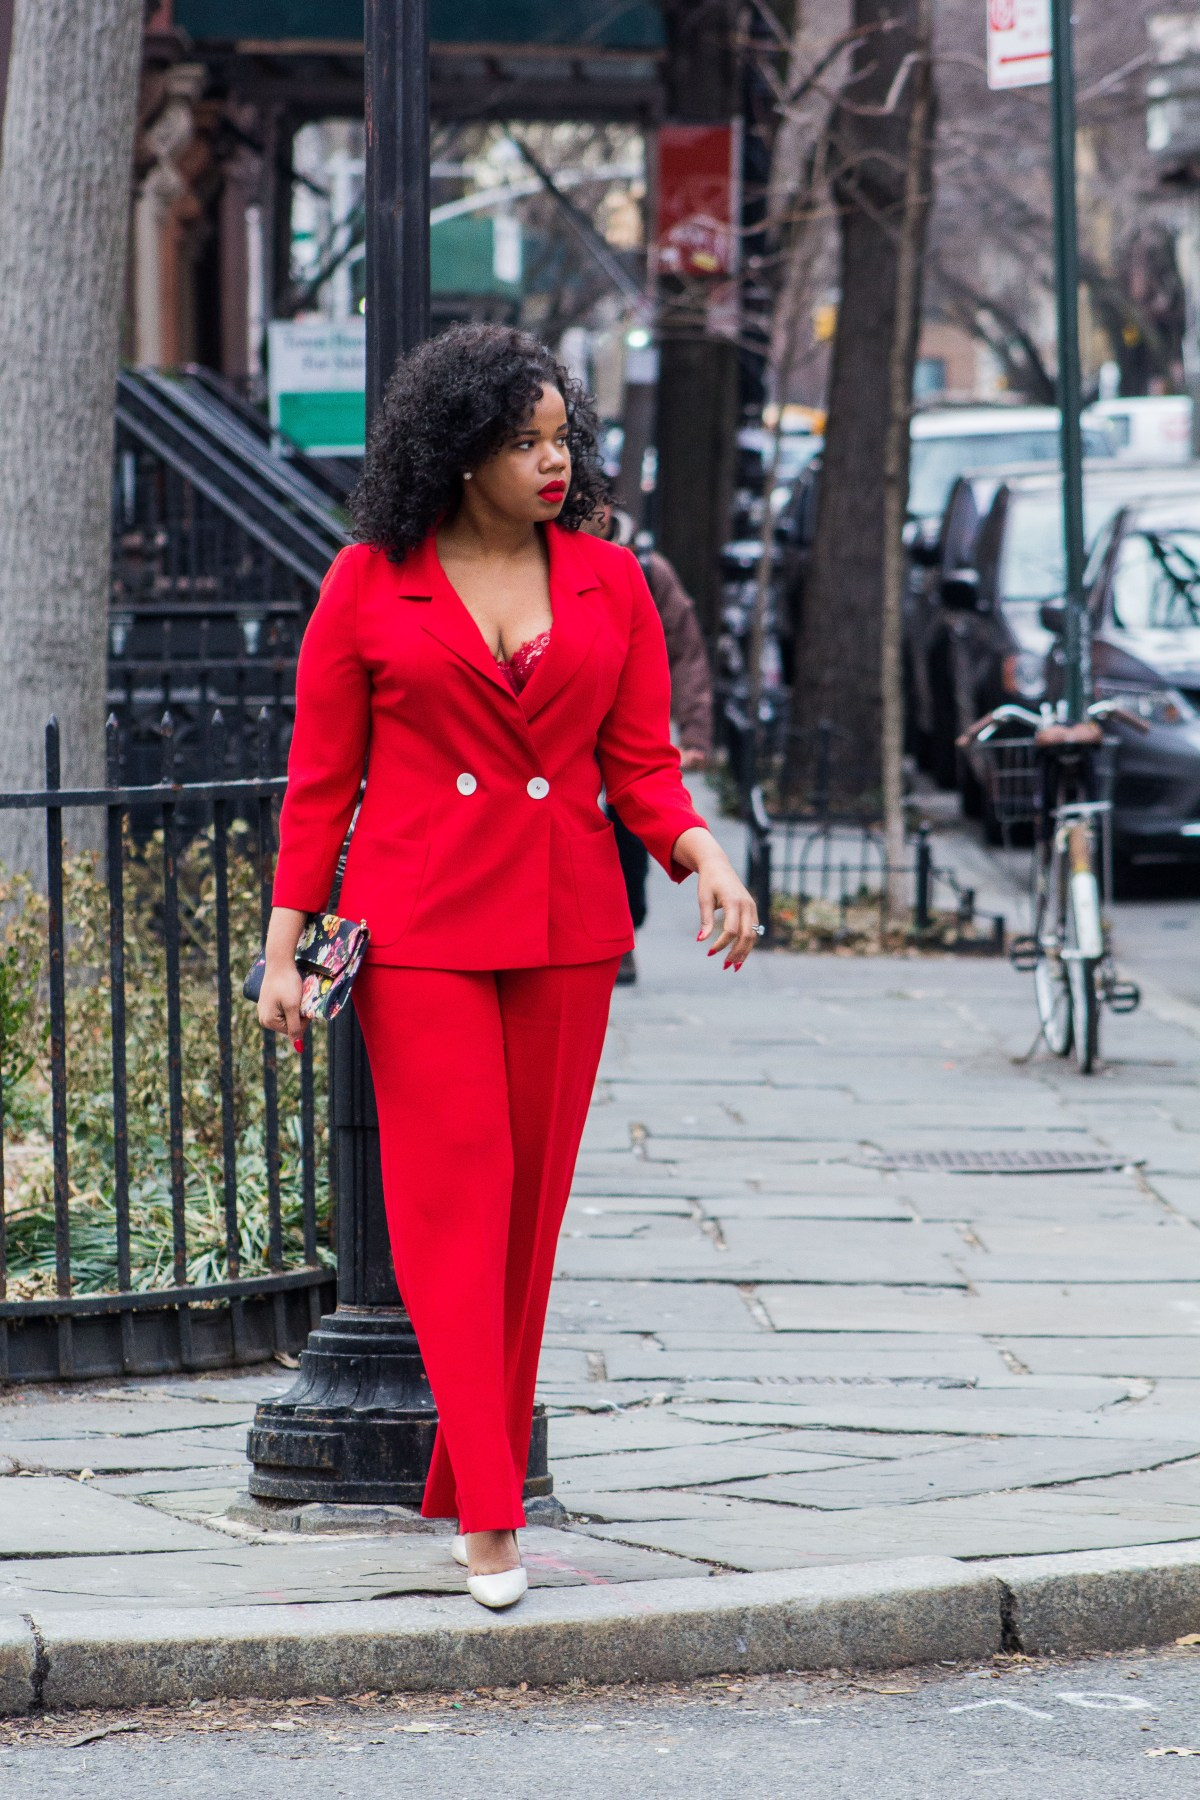 Red oufit